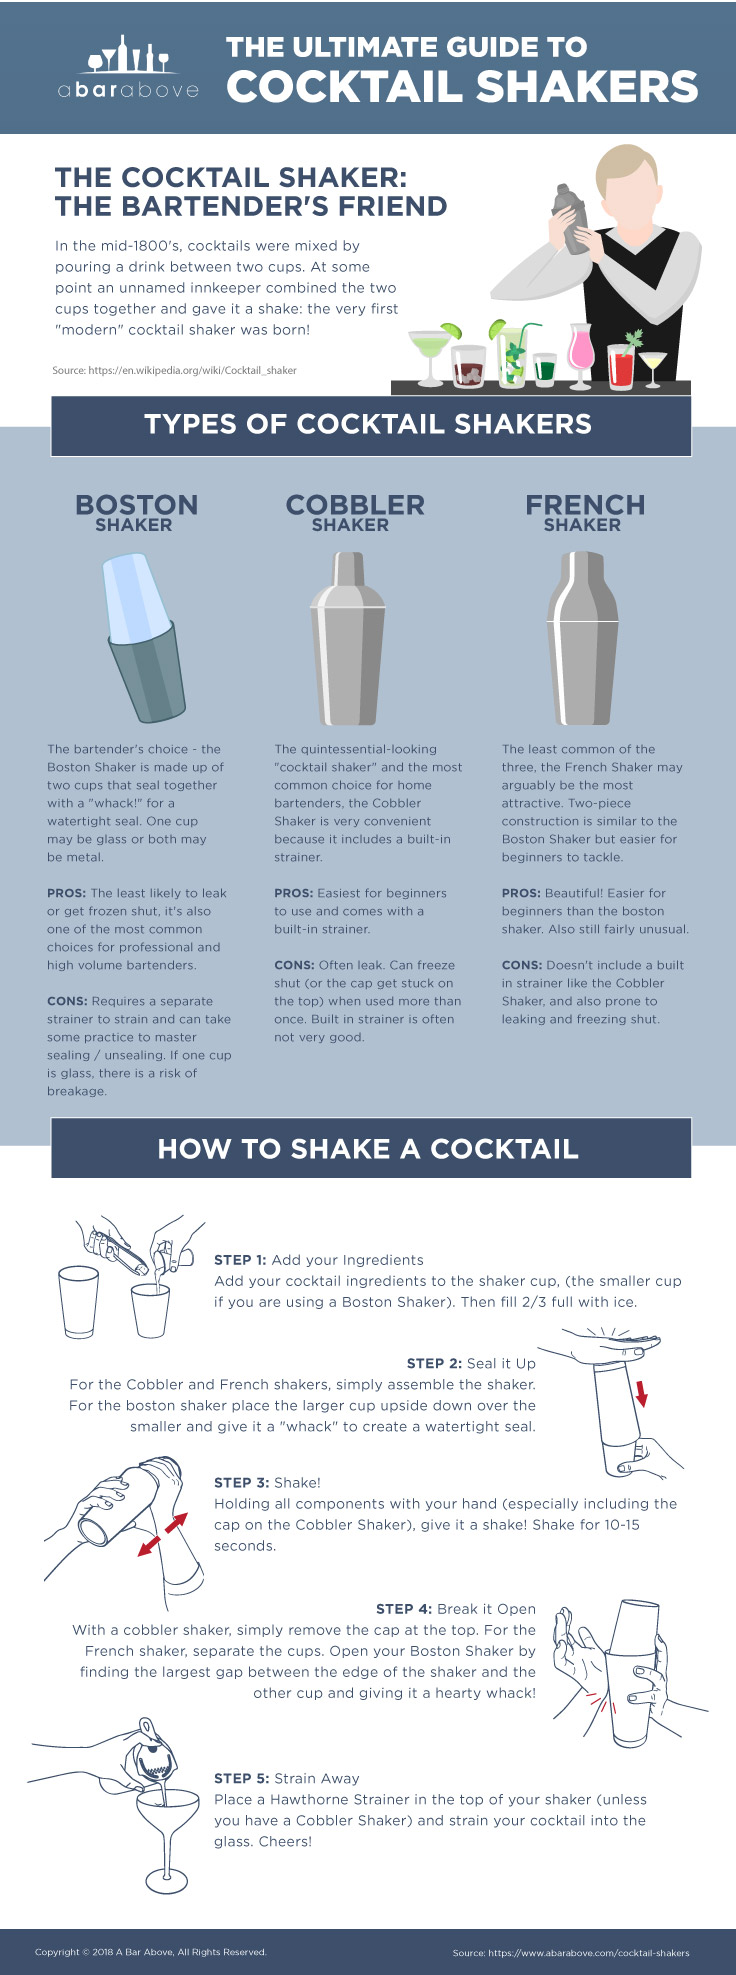 Cocktail Shakers Infographic